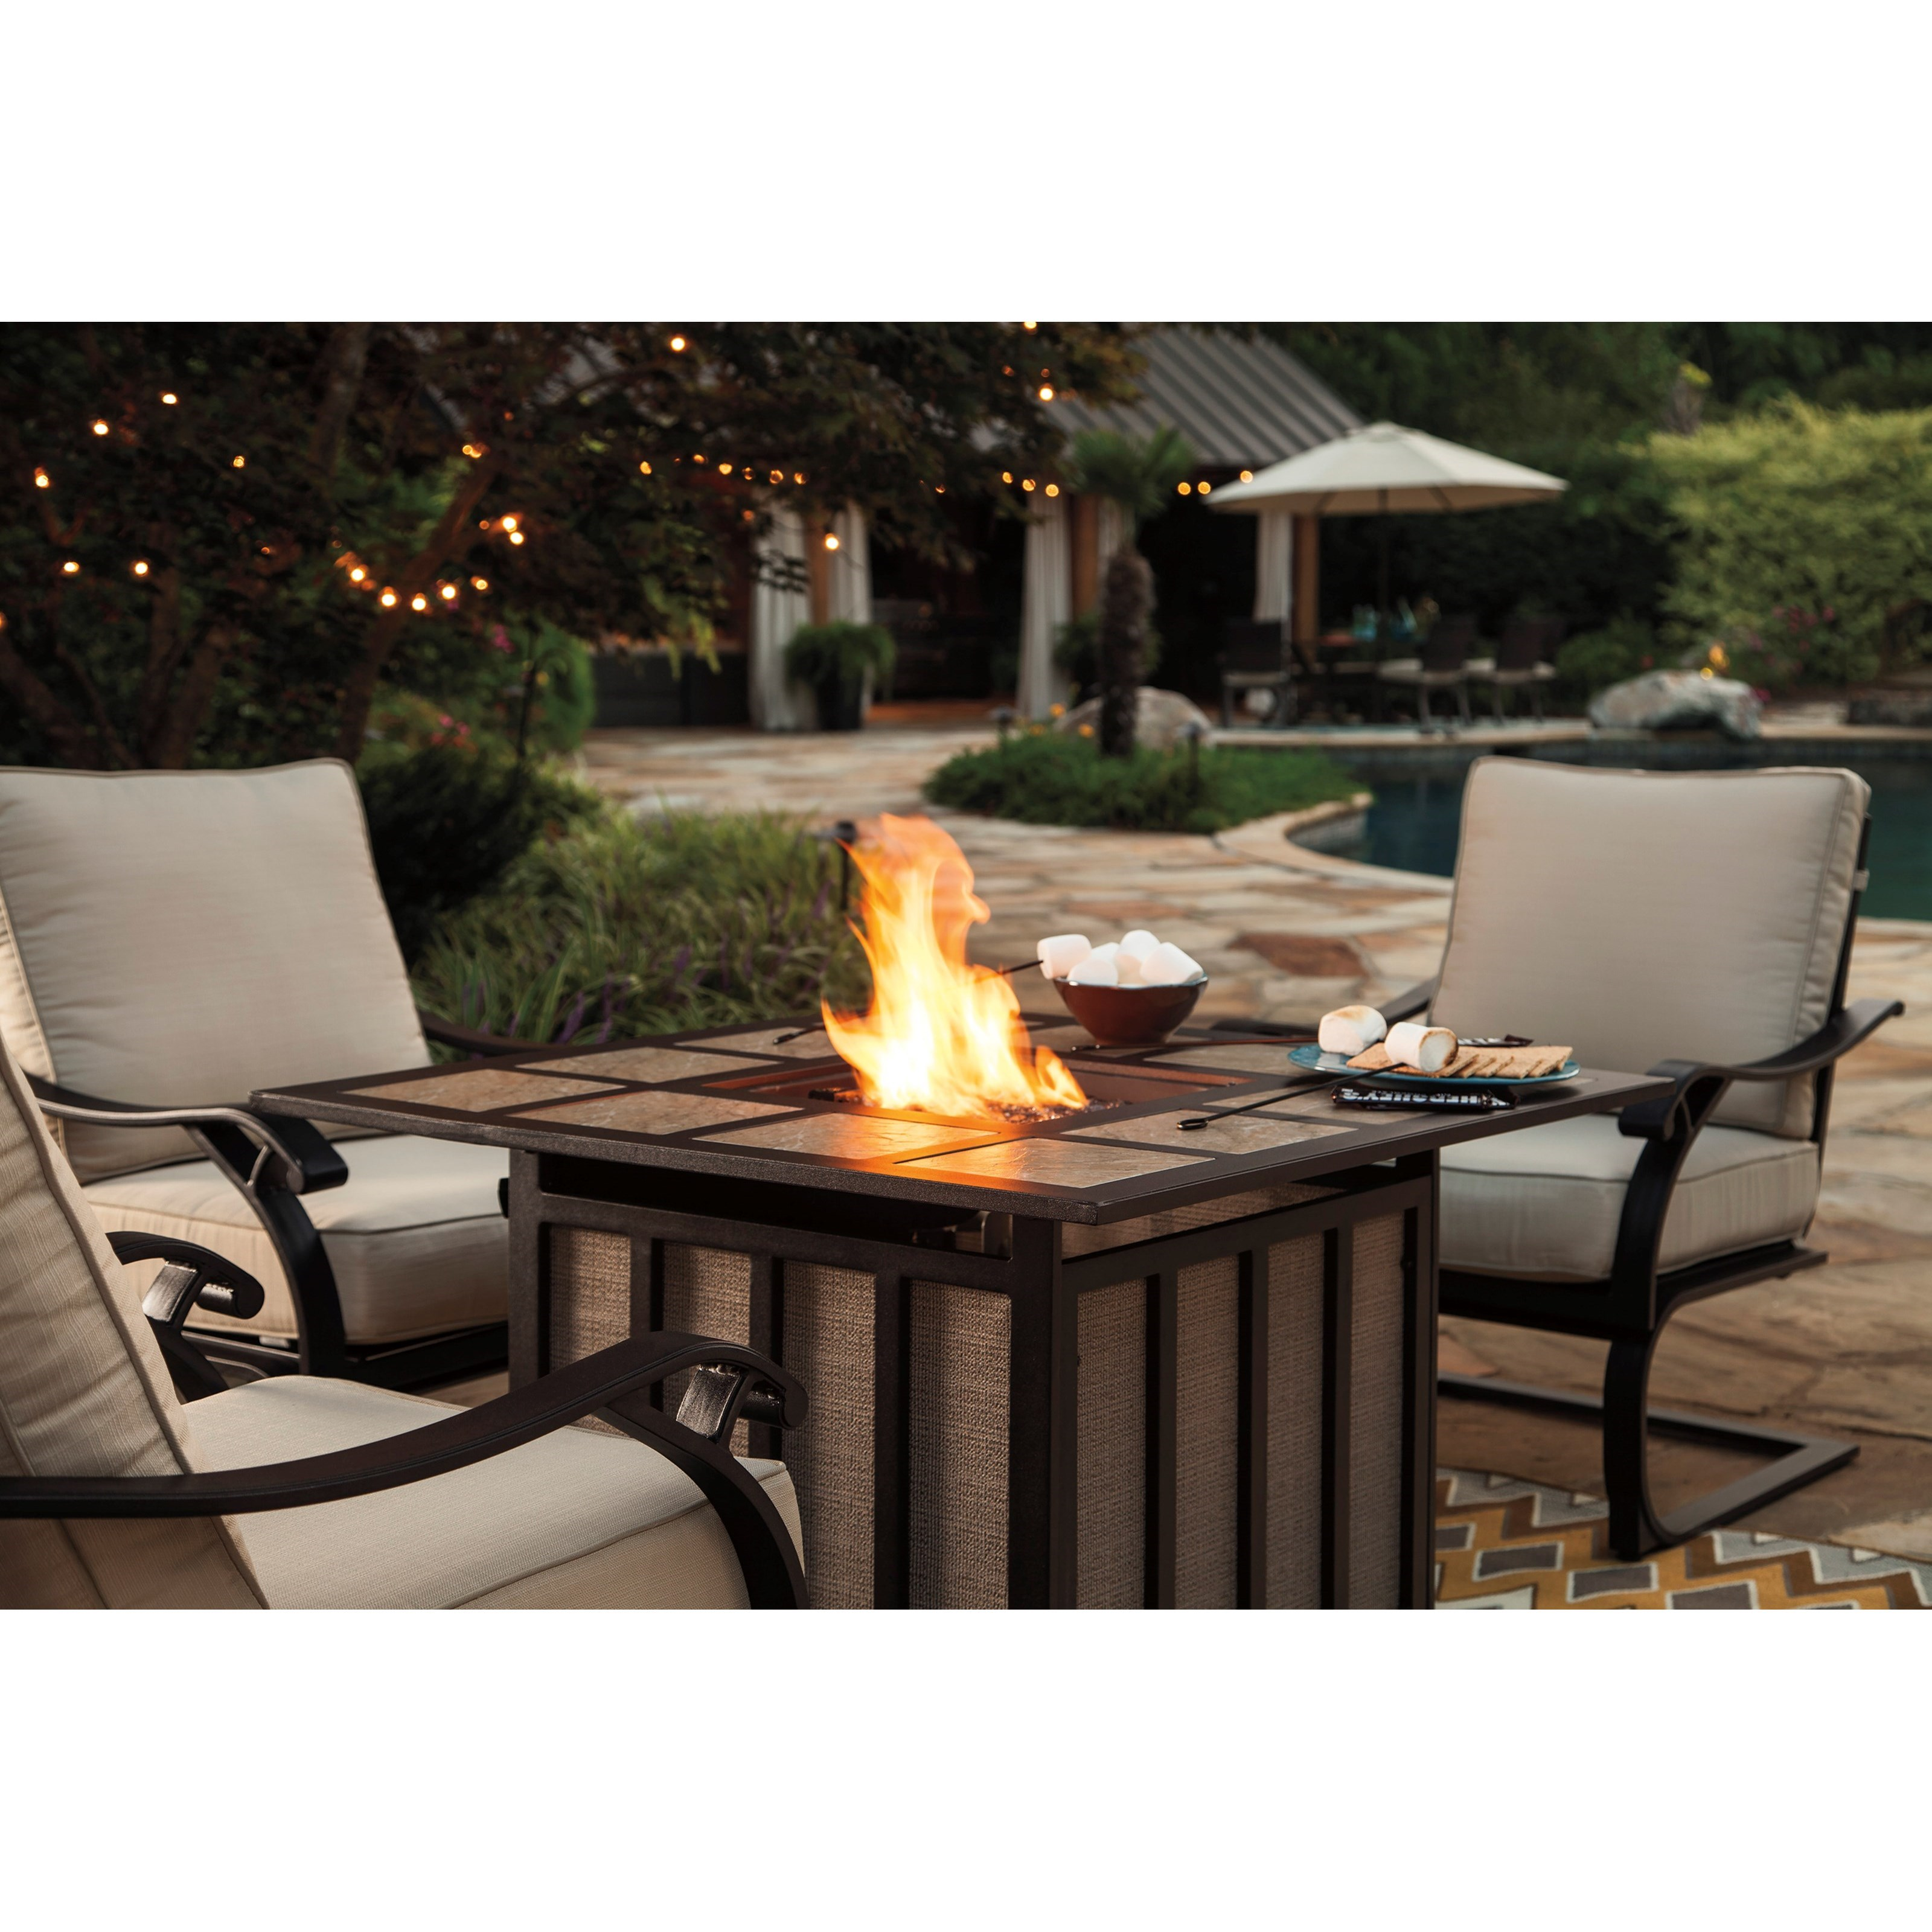 Square Fire PitWyndham Pit Chat Set Created